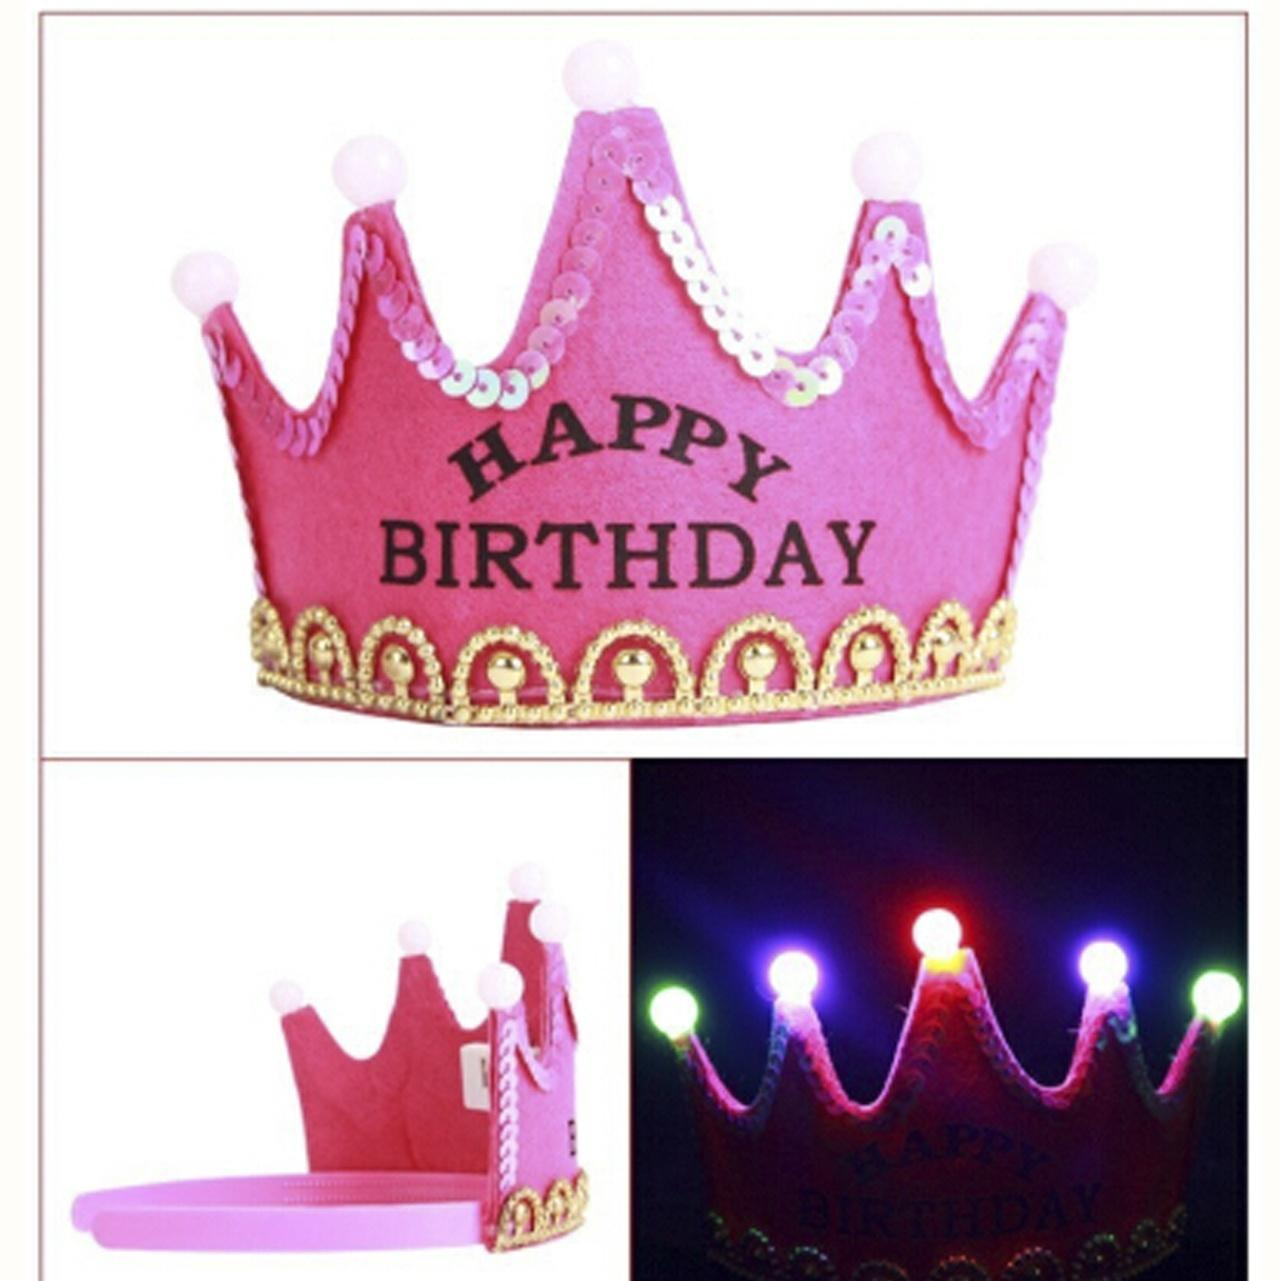 4c72f19696c42 Light Star Birthday Party Prince Princess King Crown Cap for Christmas  Halloween April Fool s Day Children s Day